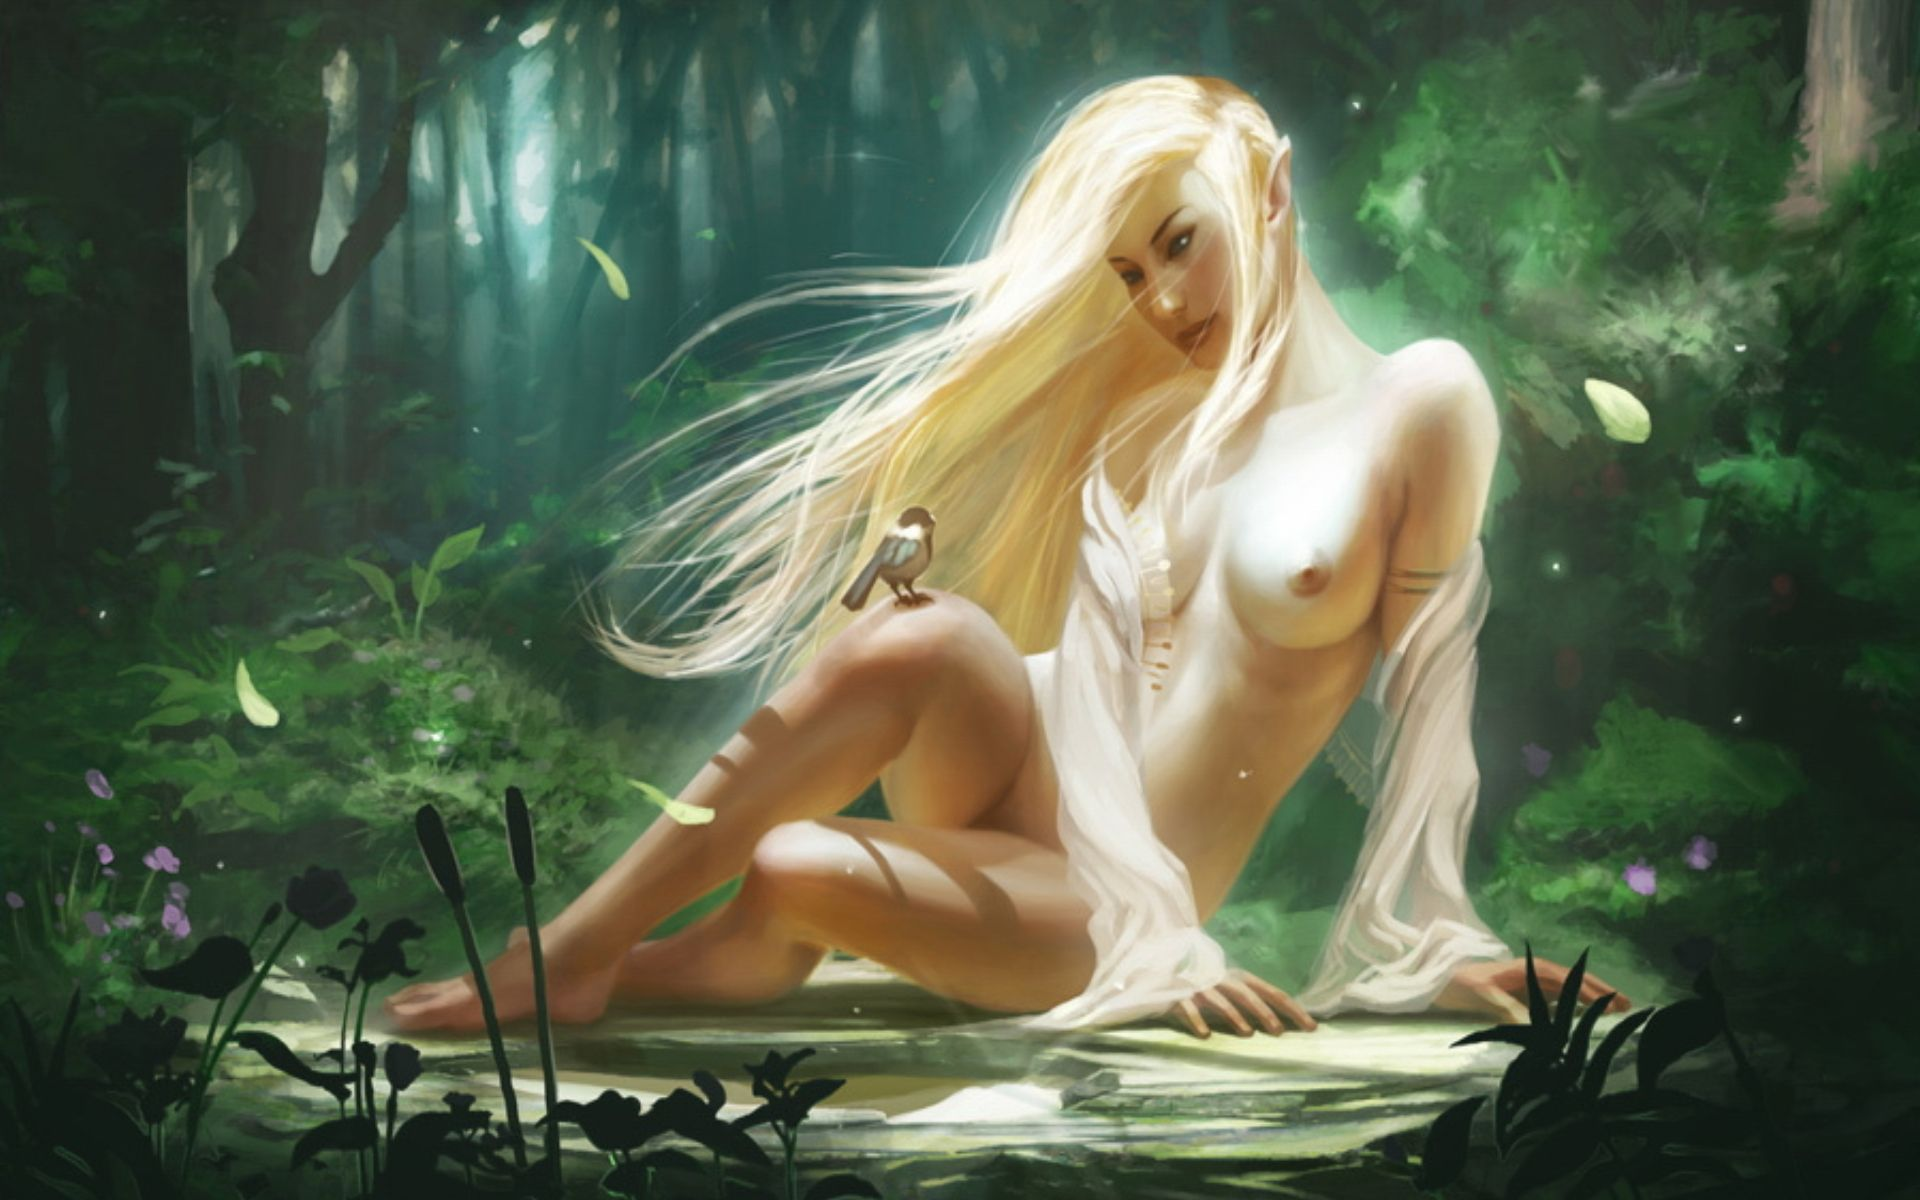 Naked faerie wing elf life exploited images